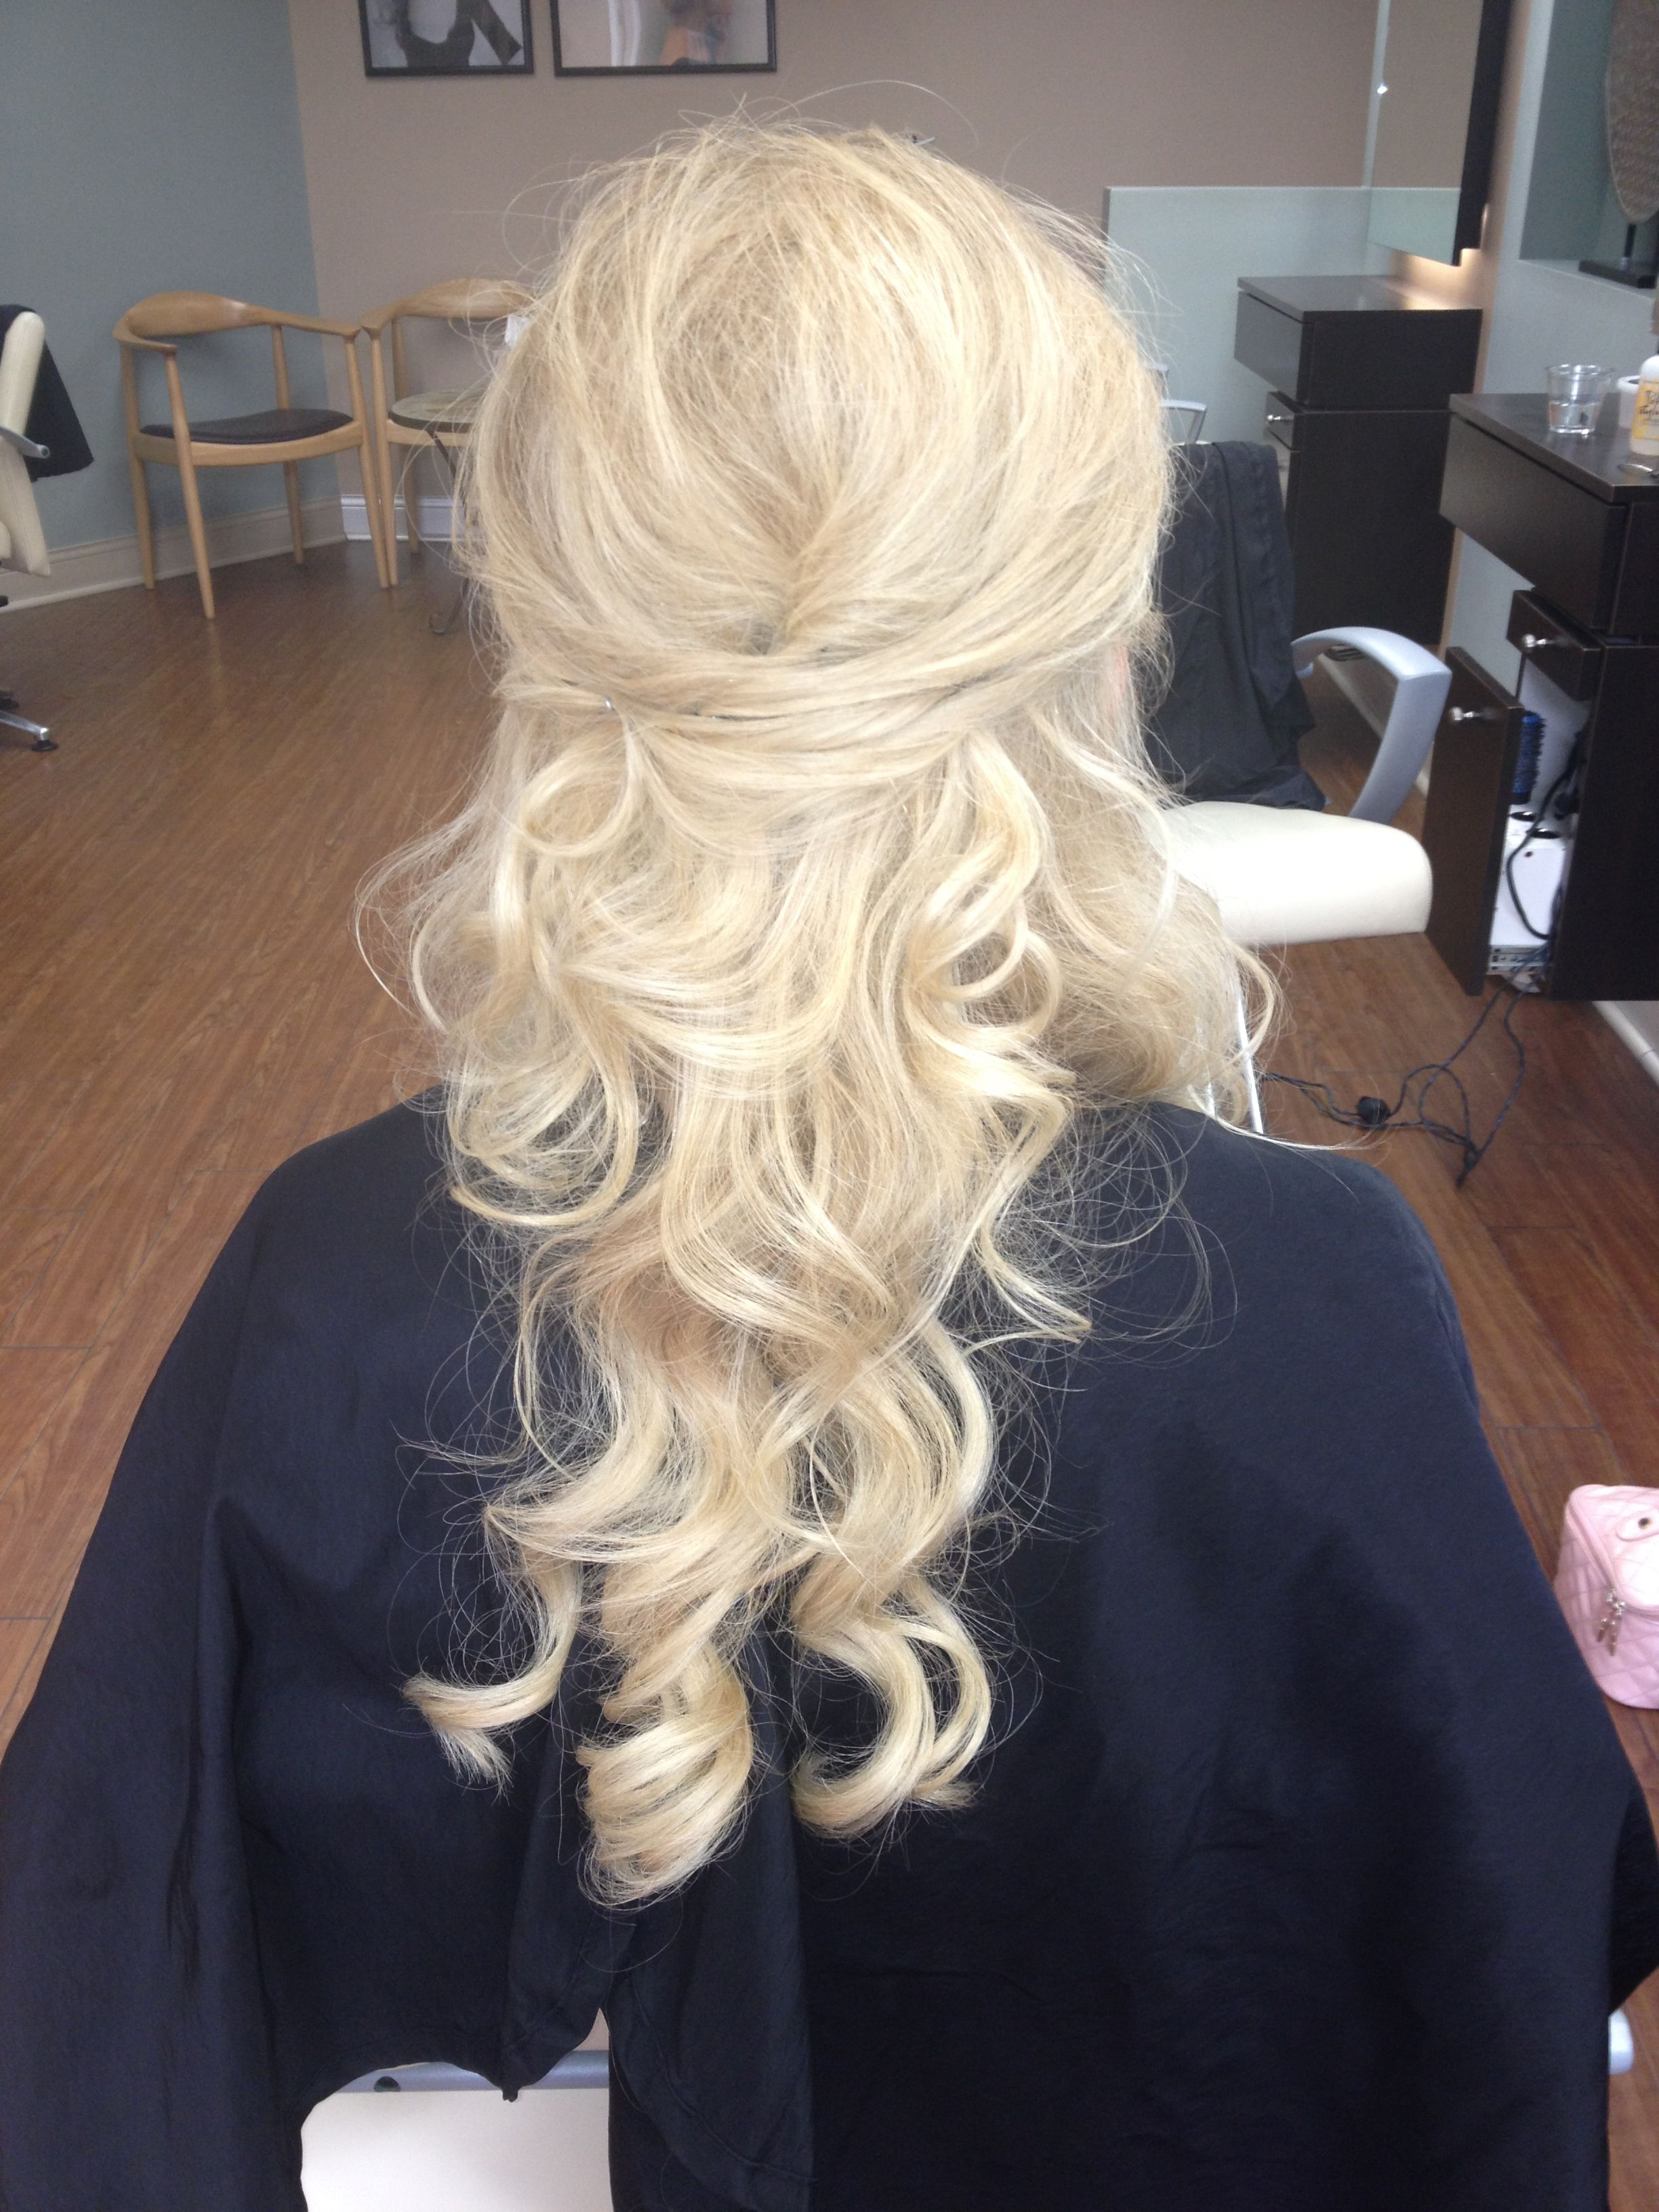 Visit us at brides book wedding hairstyles for her special daydon